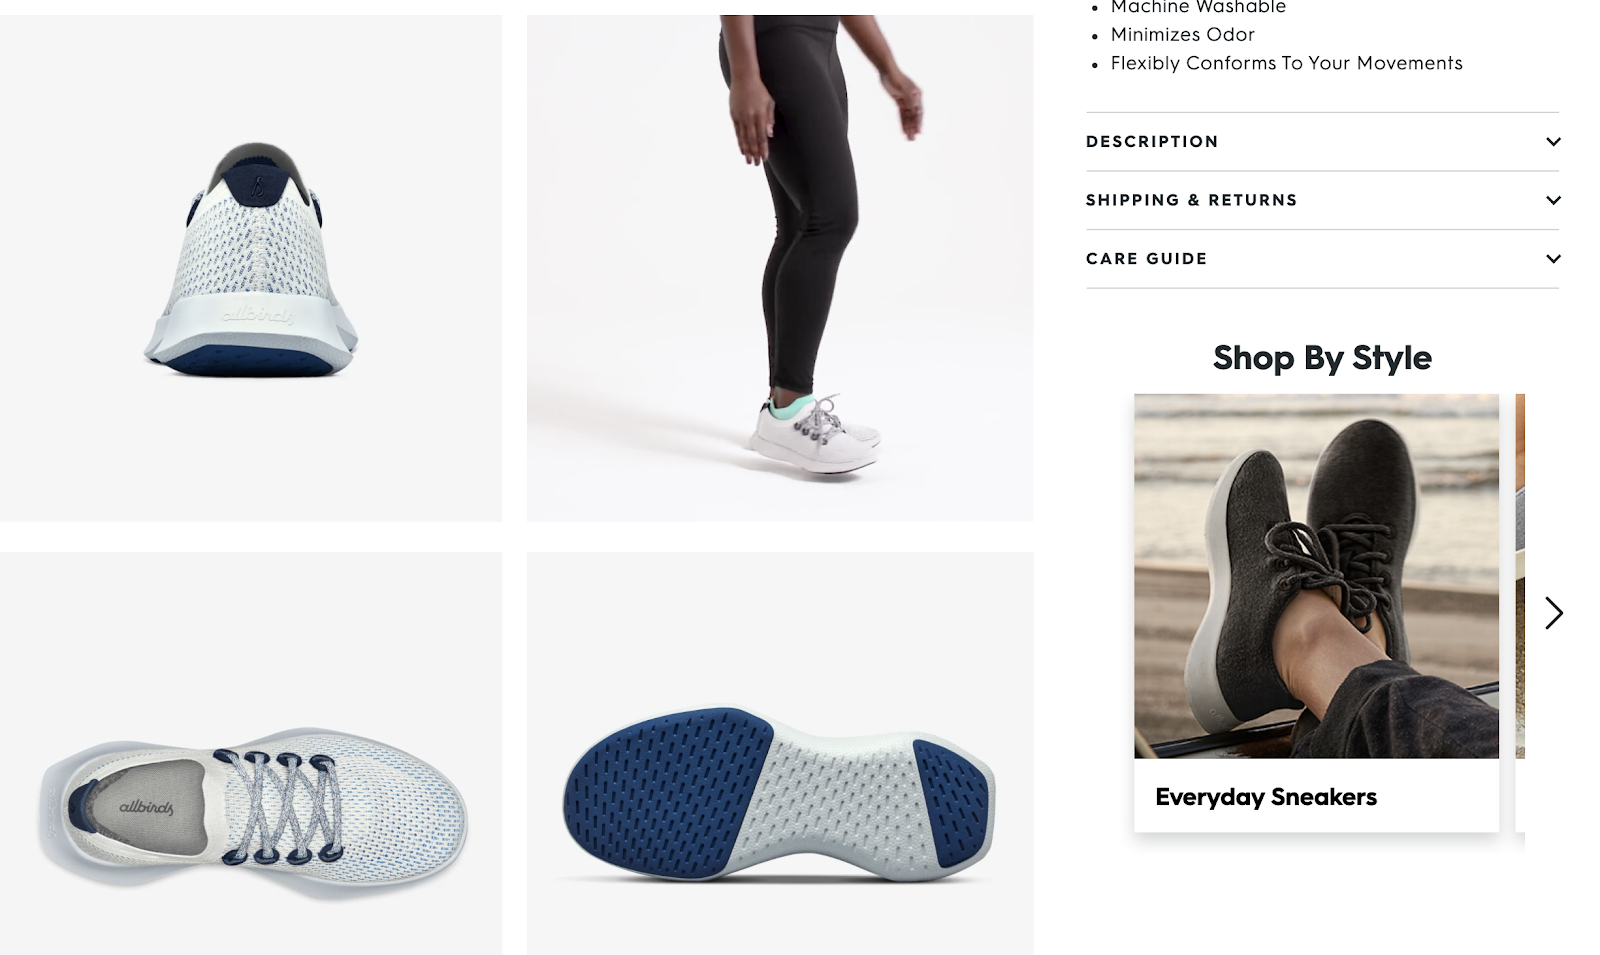 Men's Product Page Example (Allbirds)